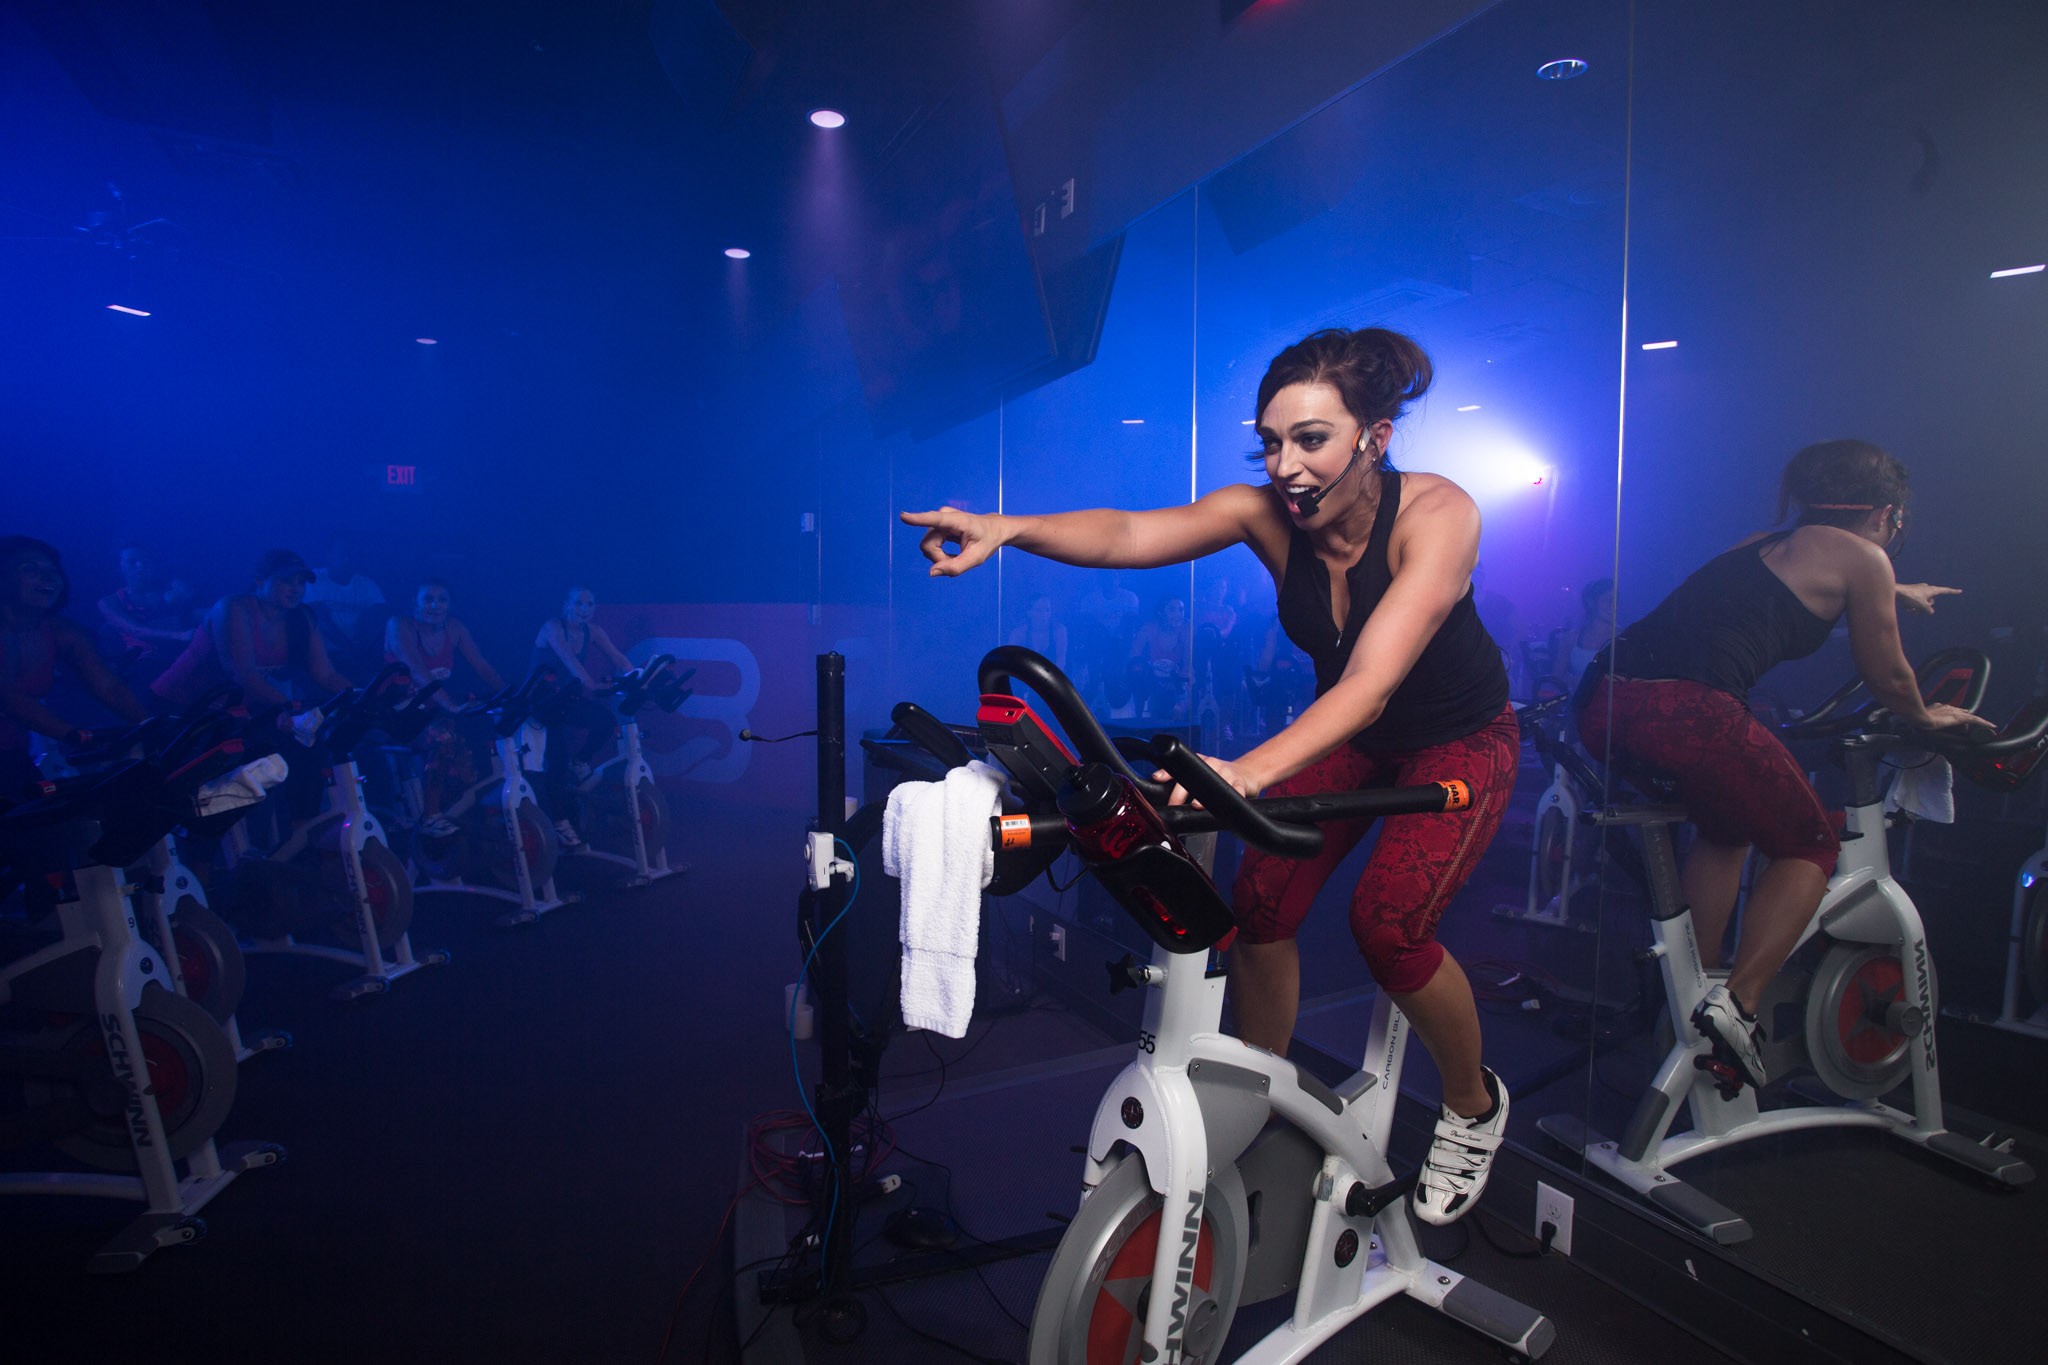 CycleStar-Instructor-3.jpg